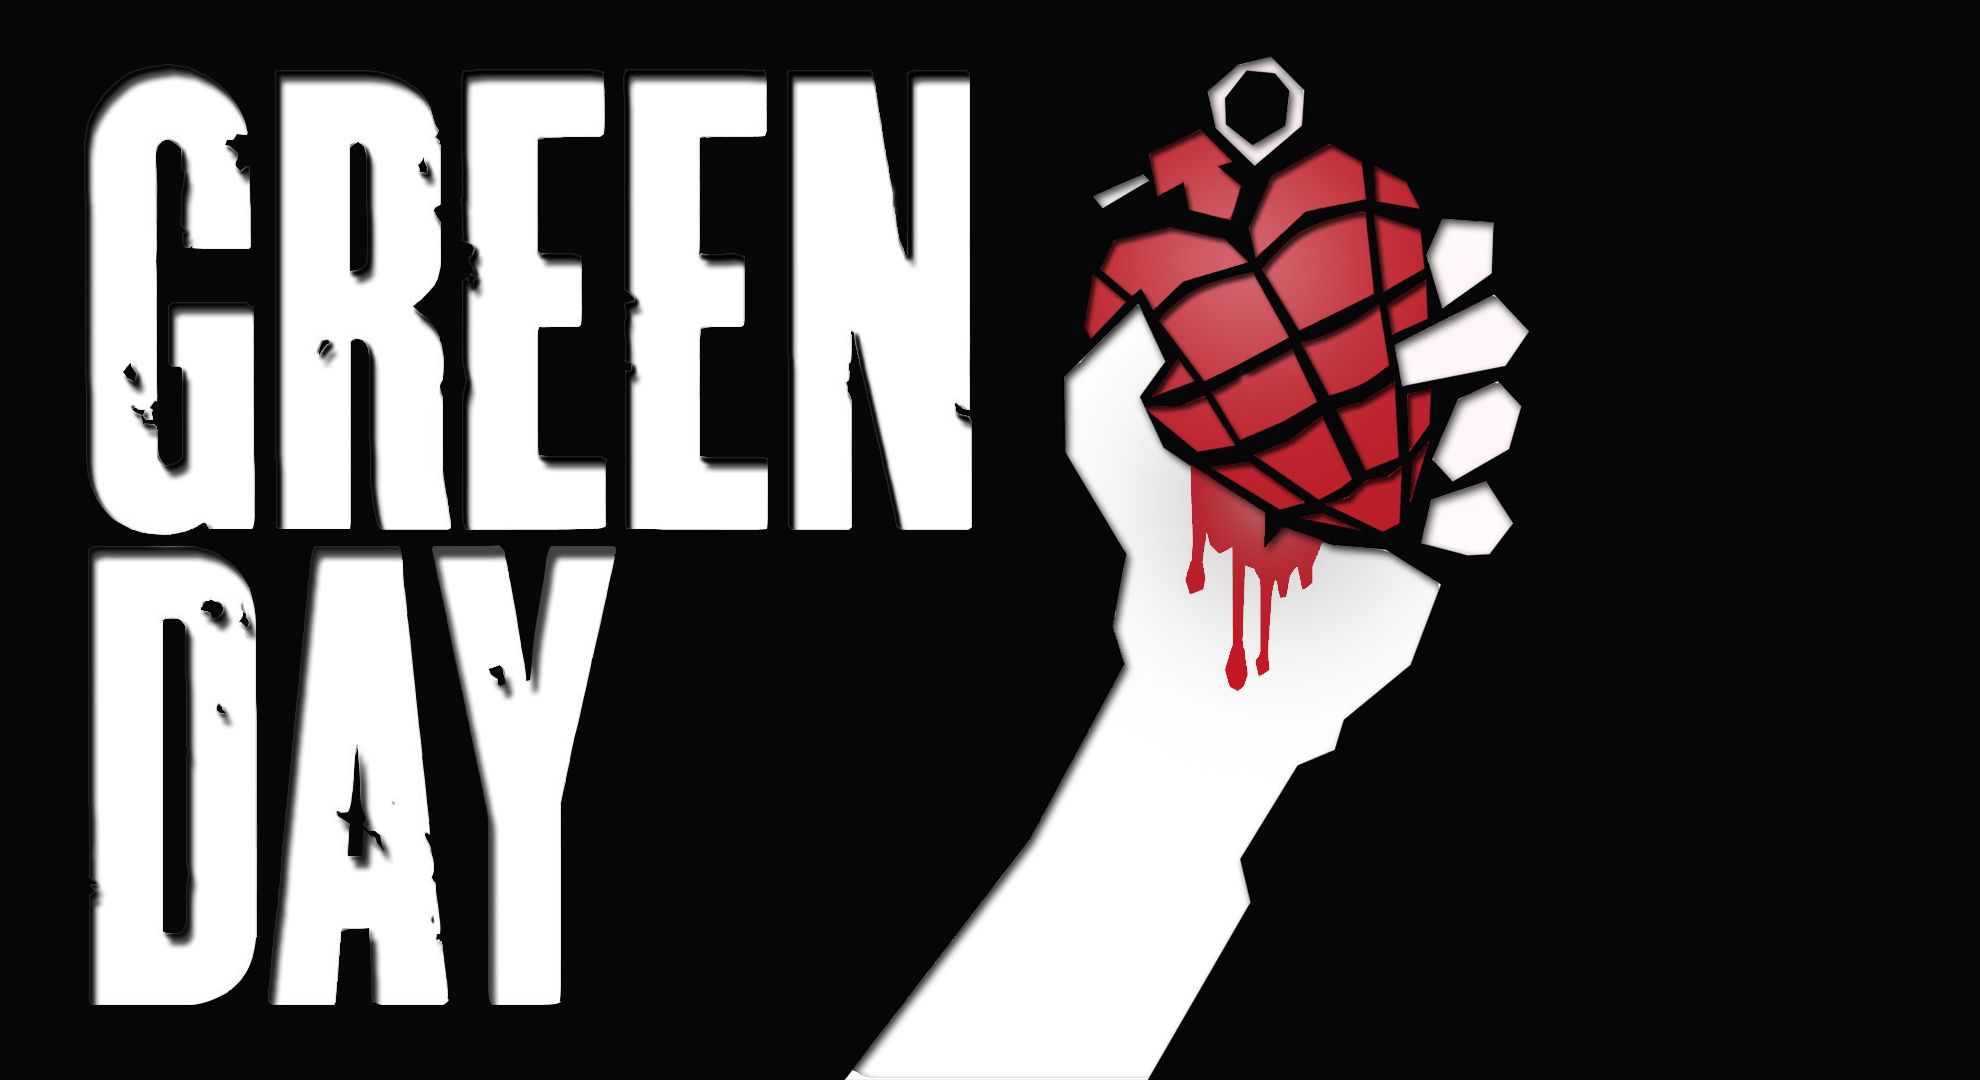 Black And White Tree Wallpaper Once Upon A Time Download Green Day Logo Wallpaper Gallery